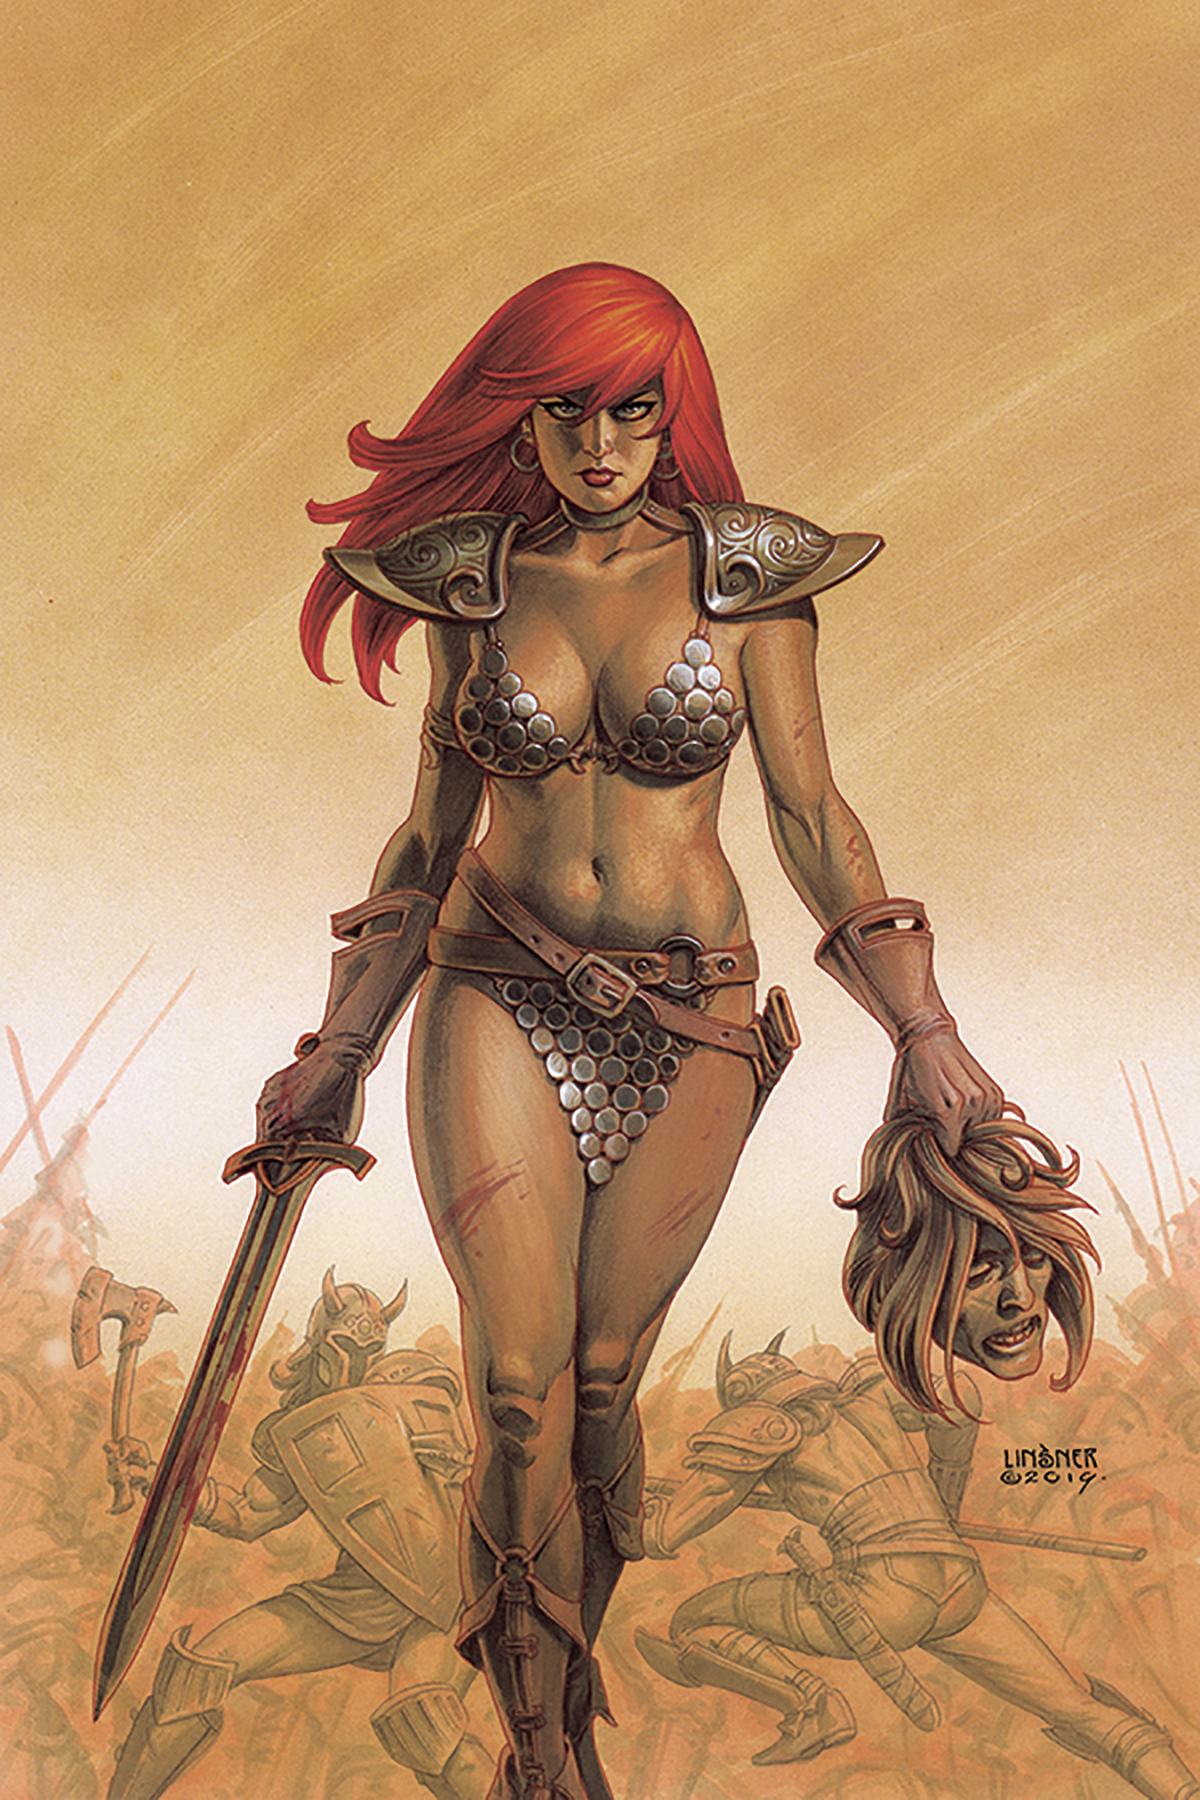 RED SONJA #11 LINSNER VIRGIN CVR